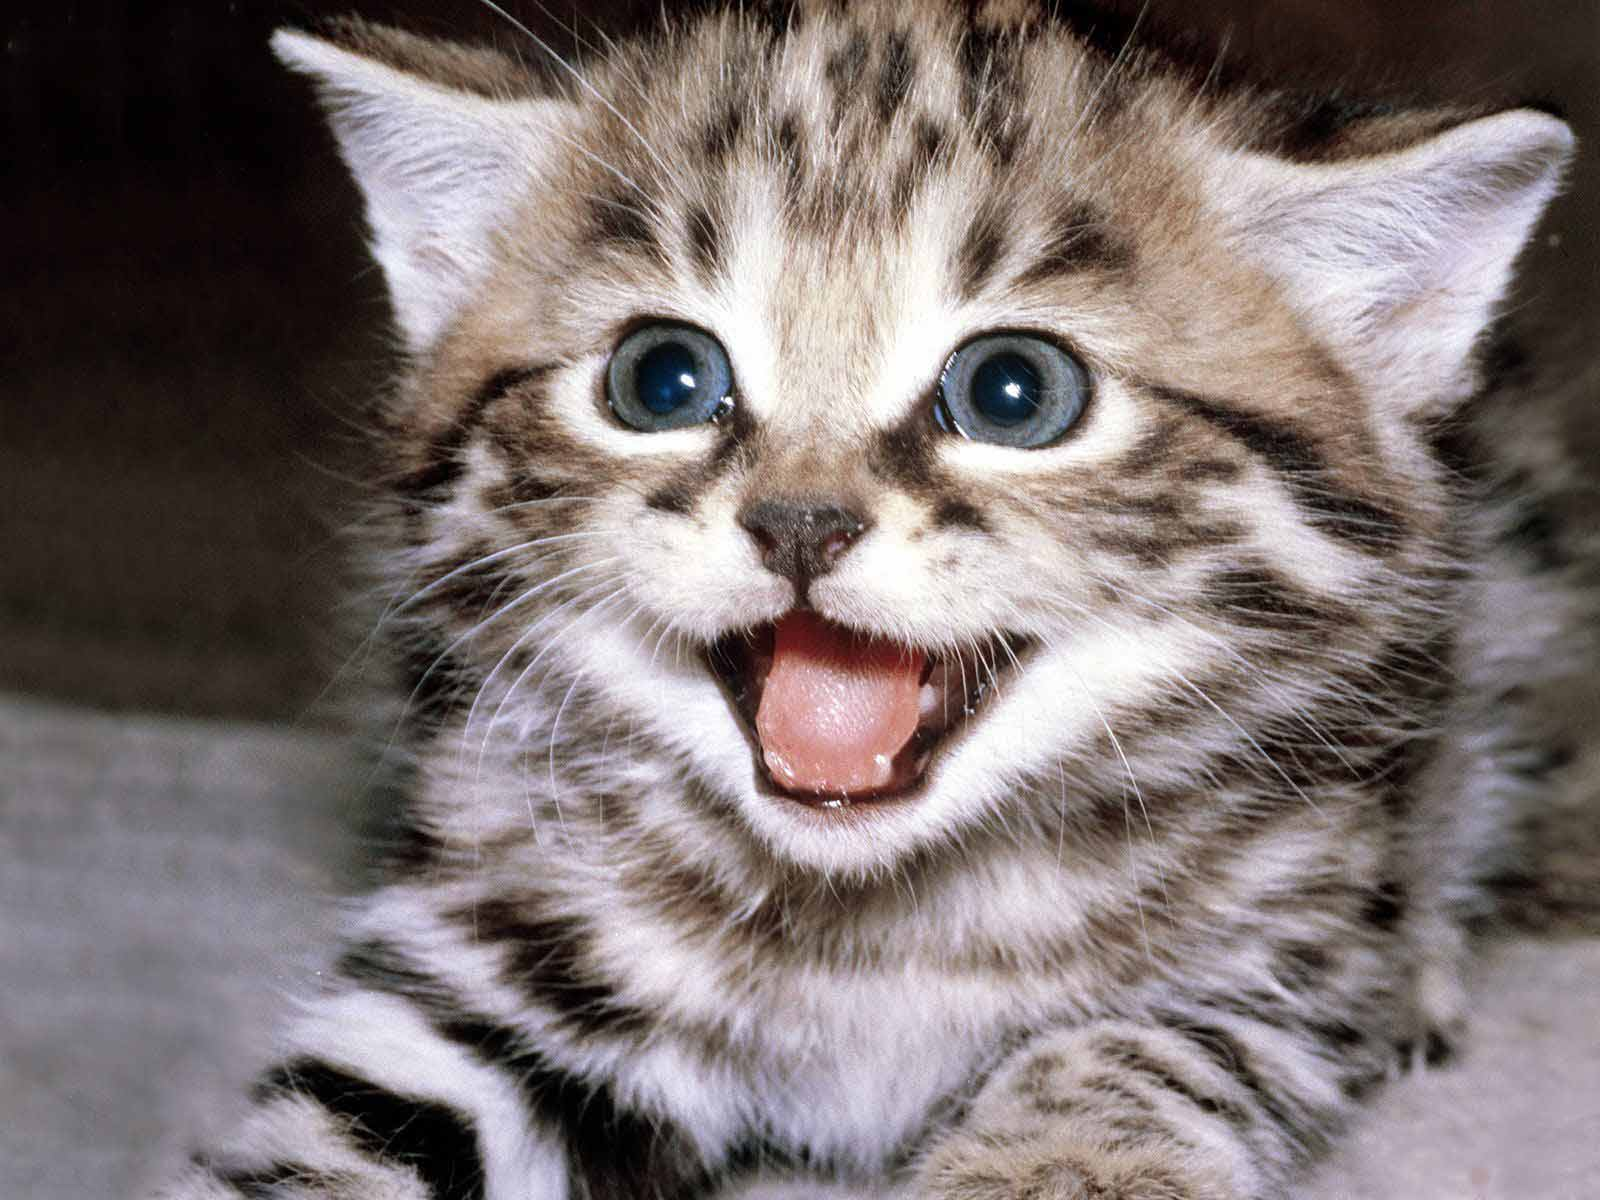 Cute Cats Wallpapers Free Download Hd Wallpapers